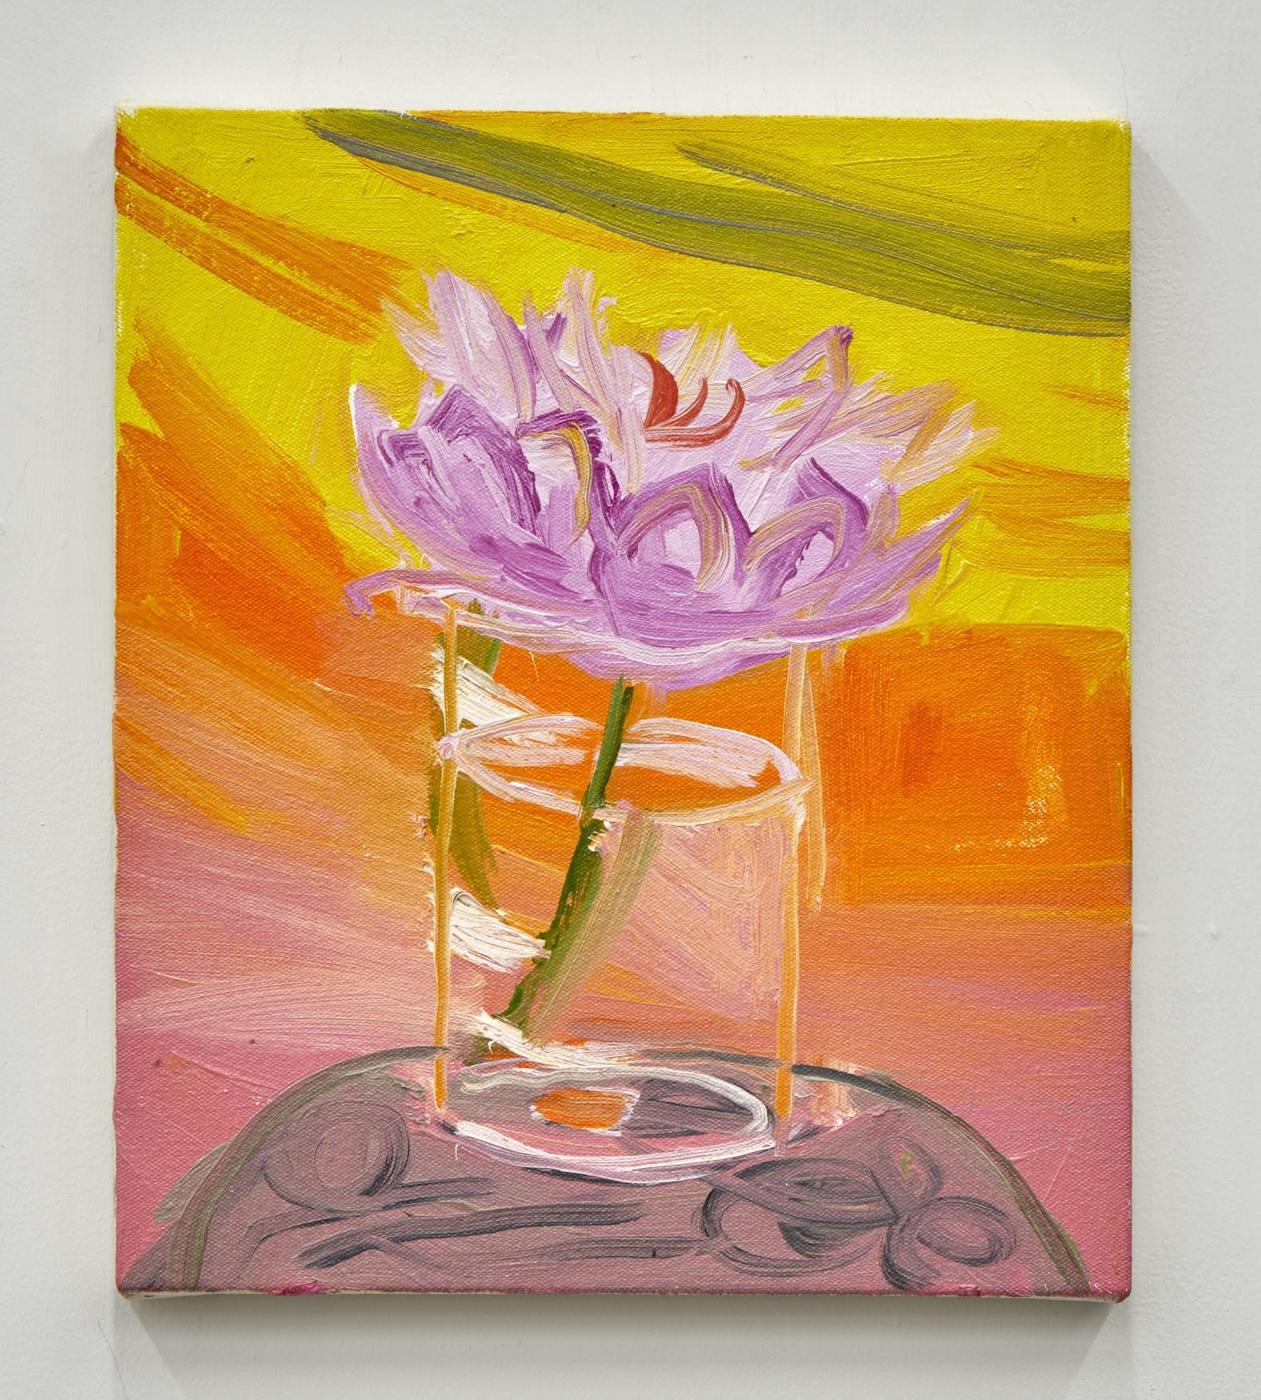 Ann Craven,/Sunset Peony, Again (Last One for Real, in a Glass, Guilford,  6-18-20), 2020/, 2020, oil on linen, 35.6 × 30.5 cm